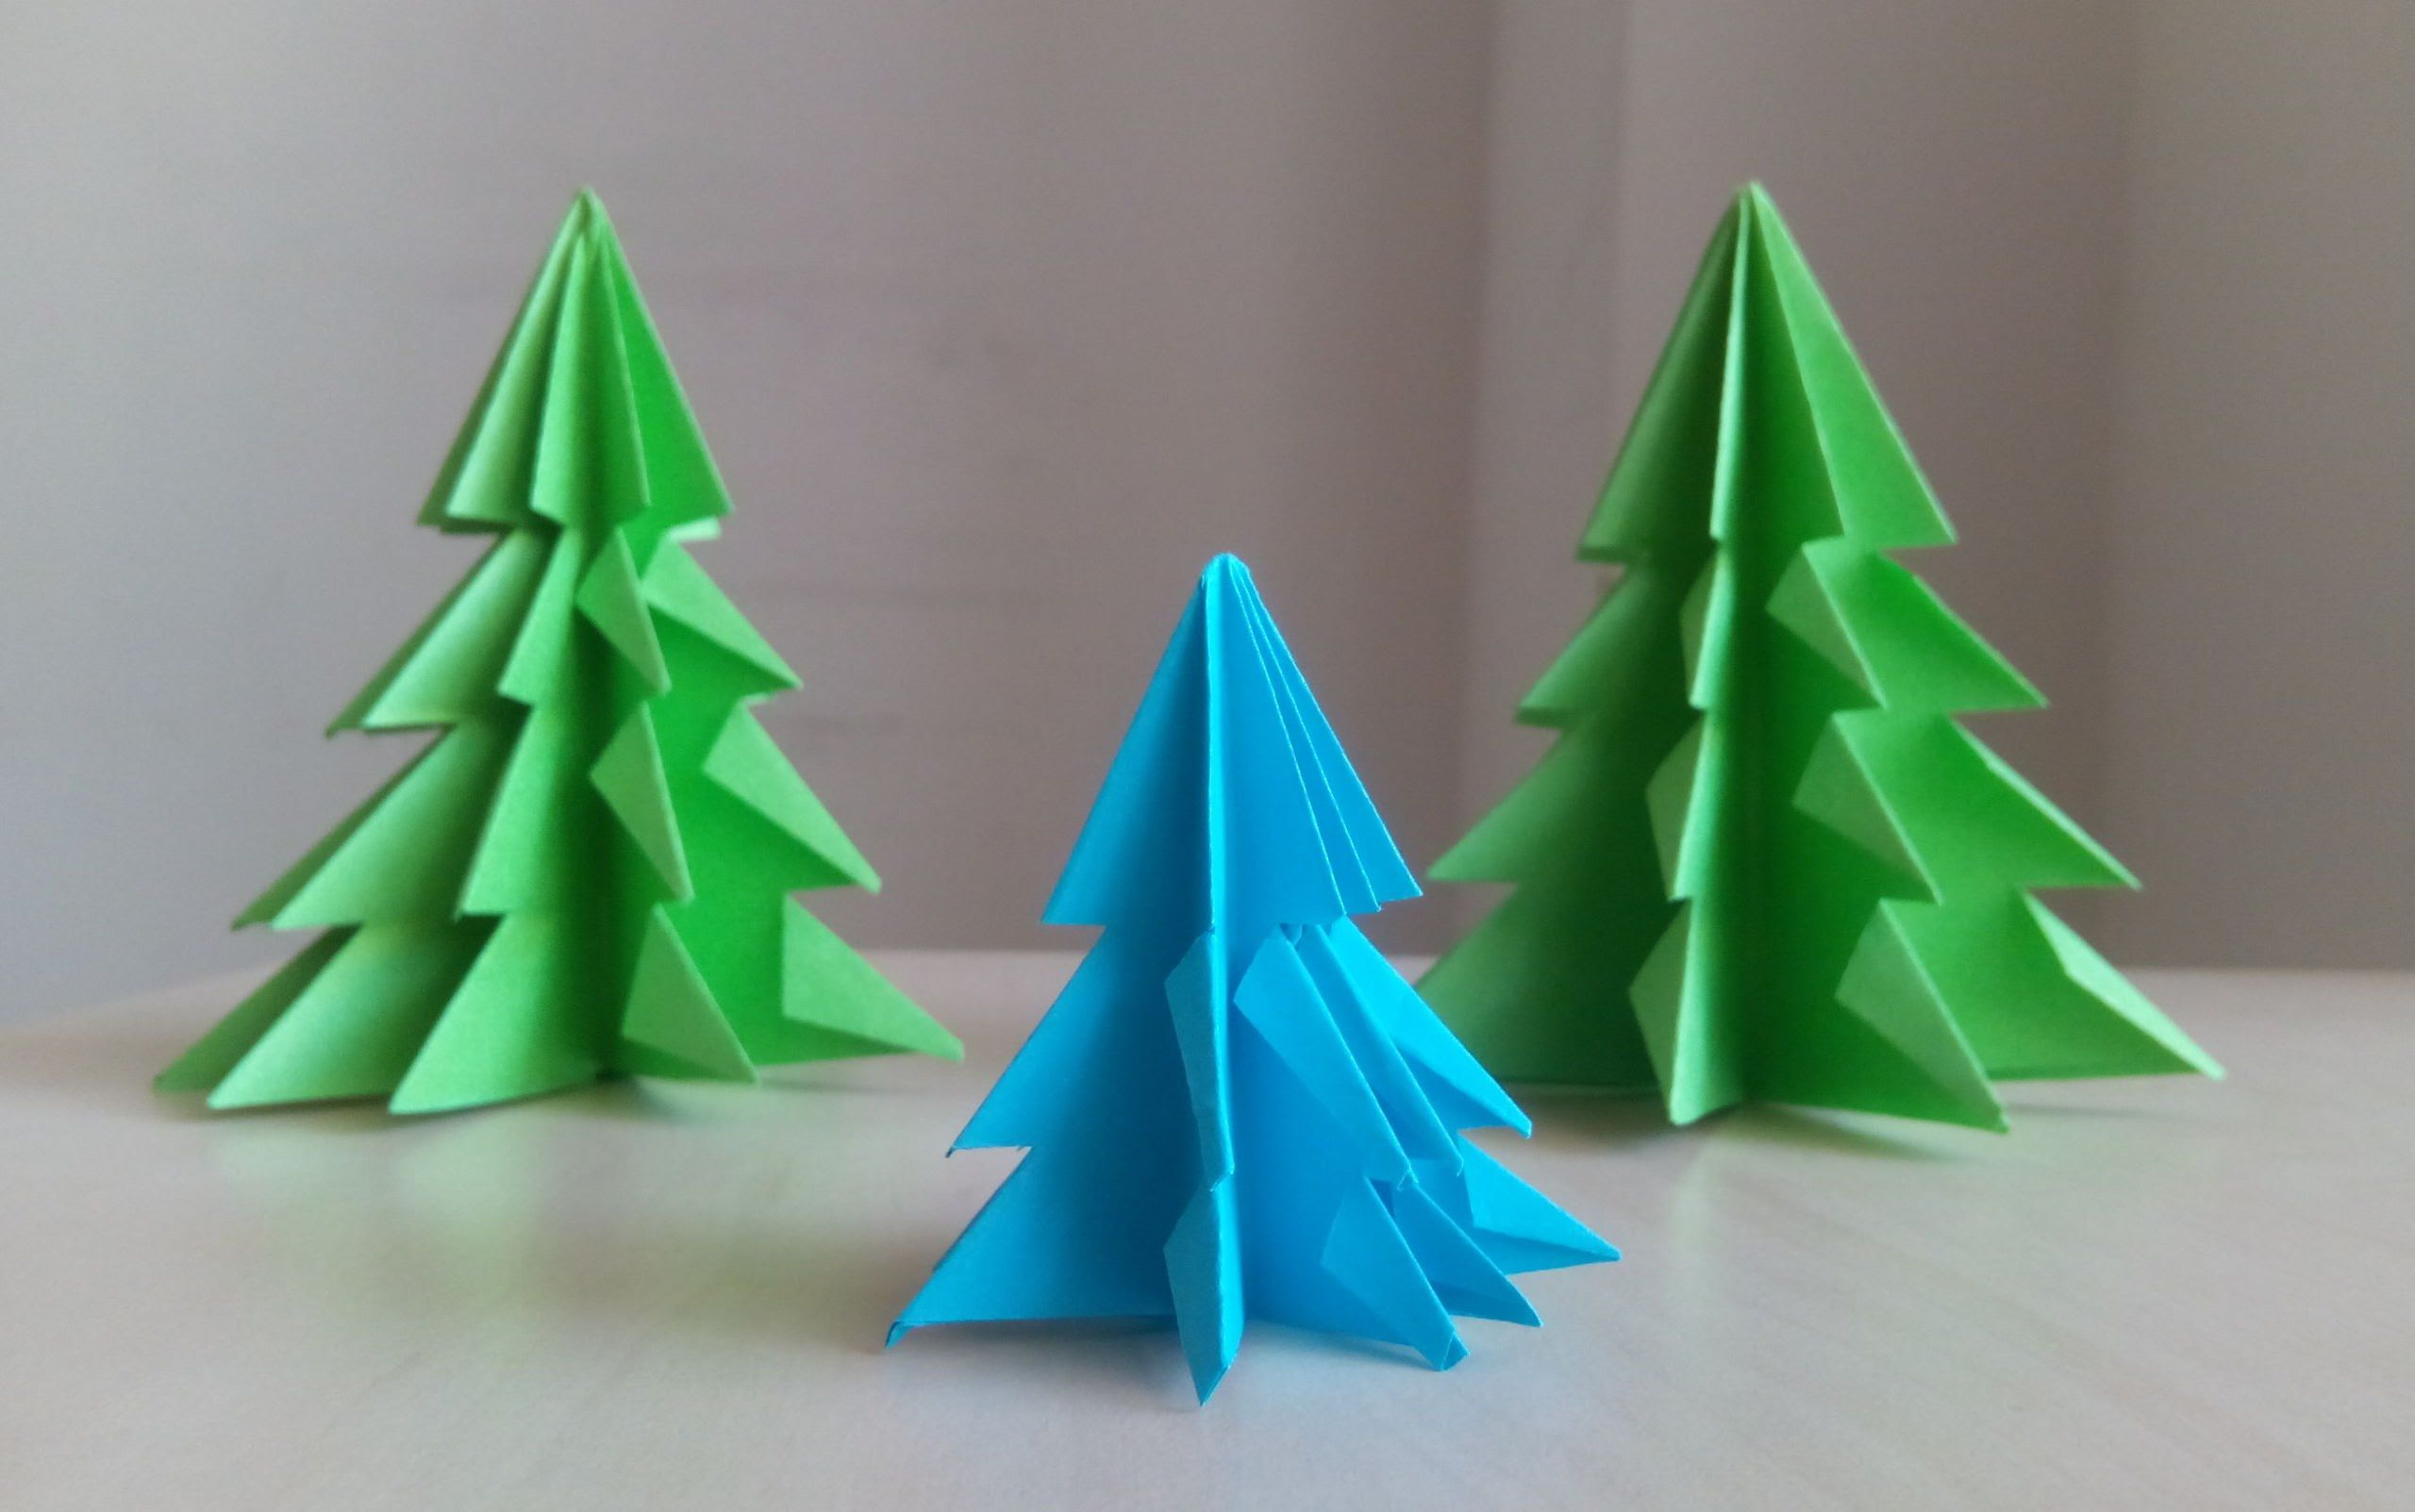 3d Paper Christmas Tree How To Make A 3d Paper Xmas Tree Diy Tutorial Diy Paper Christmas Tree Christmas Tree Paper Craft Origami Christmas Tree